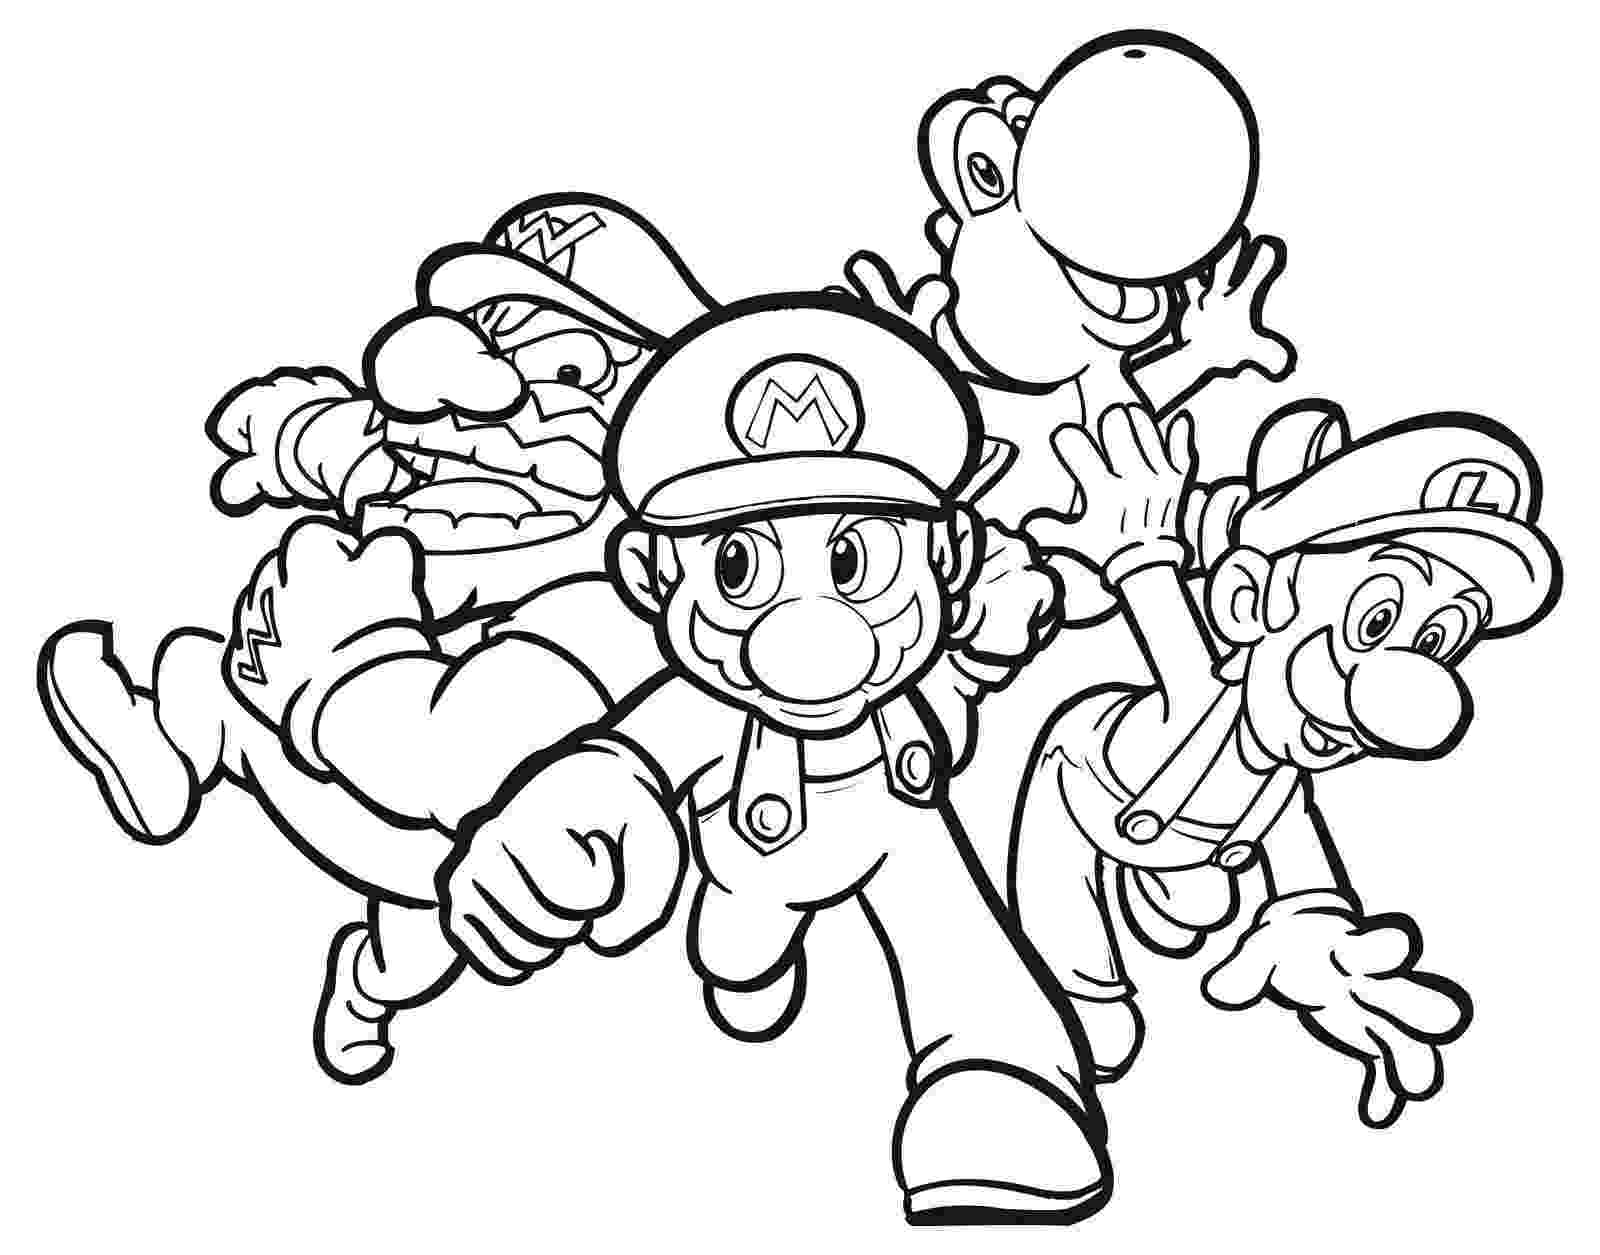 awesome coloring pages for kids awesome apple coloring pages for adults or kids coloring kids pages awesome for